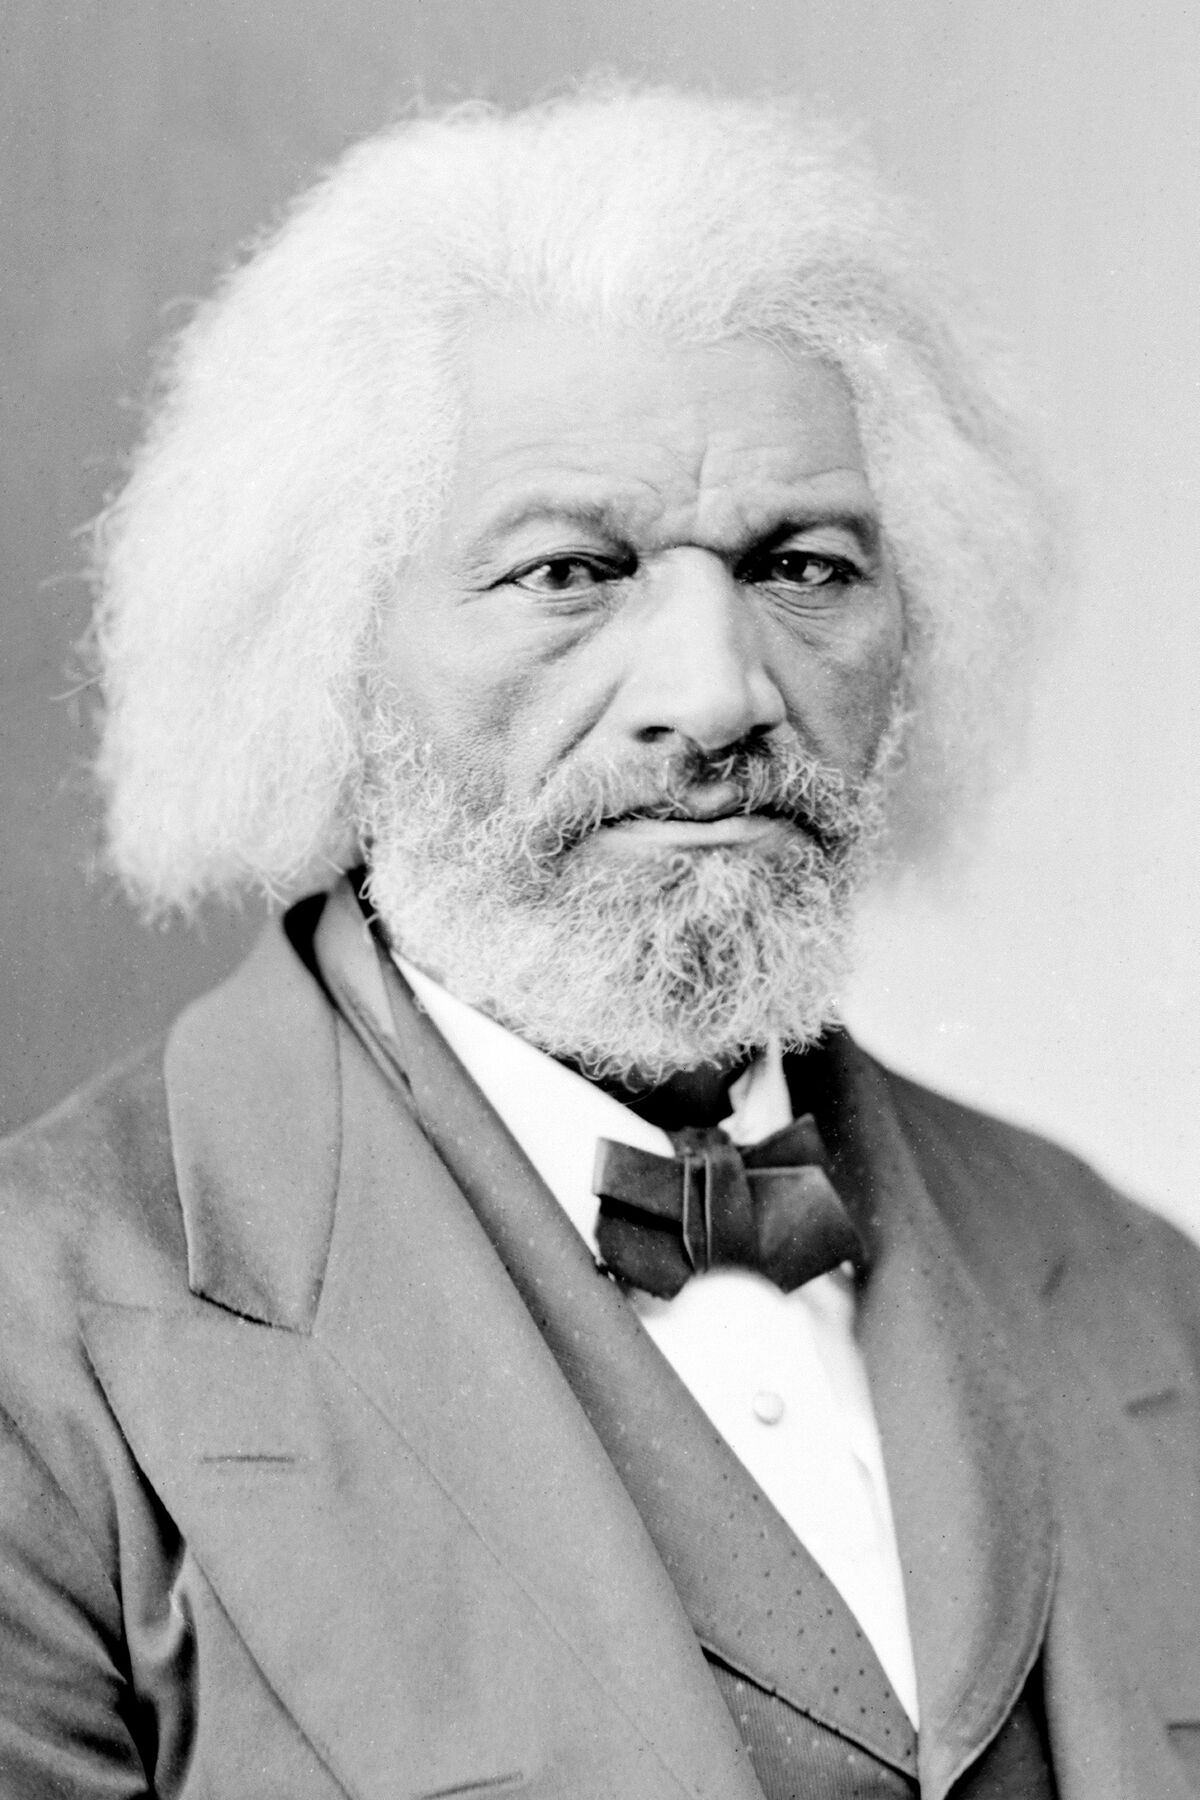 Frederick Douglass, circa 1865–1880. Brady-Handy Photograph Collection, Library of Congress. Image via Wikimedia Commons.